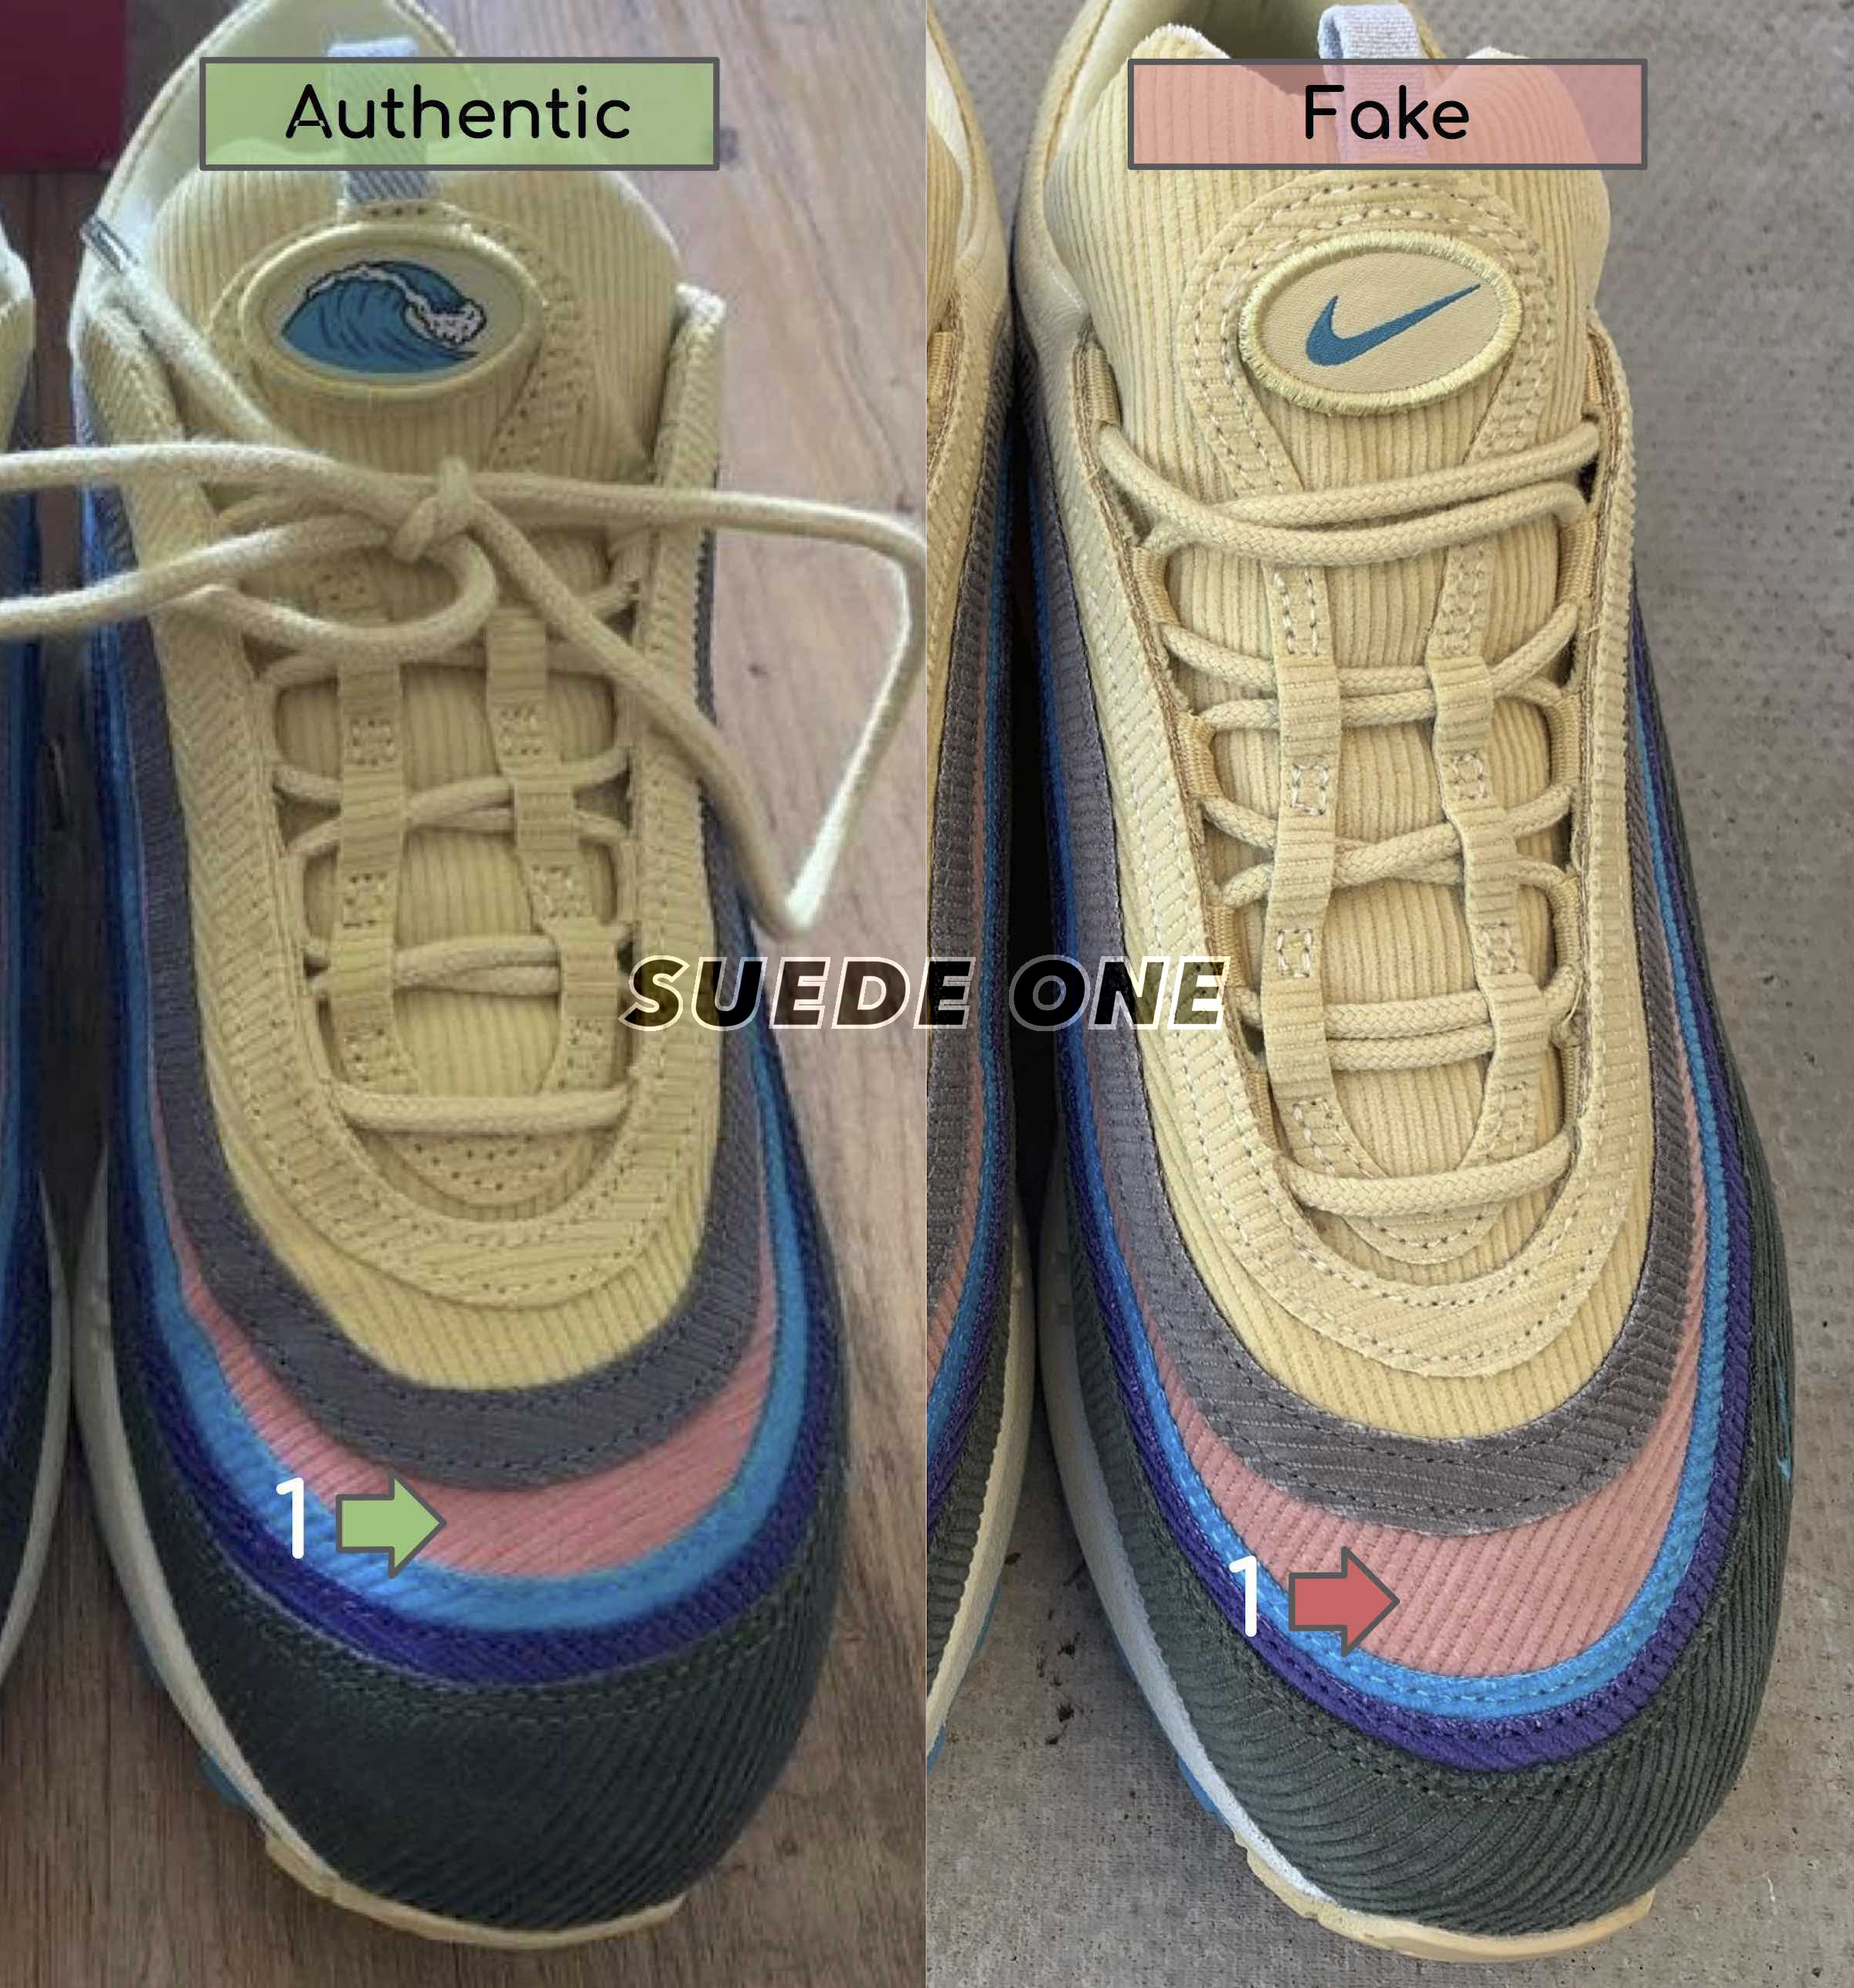 Air Max 1/97 Sean Wotherspoon - Real vs